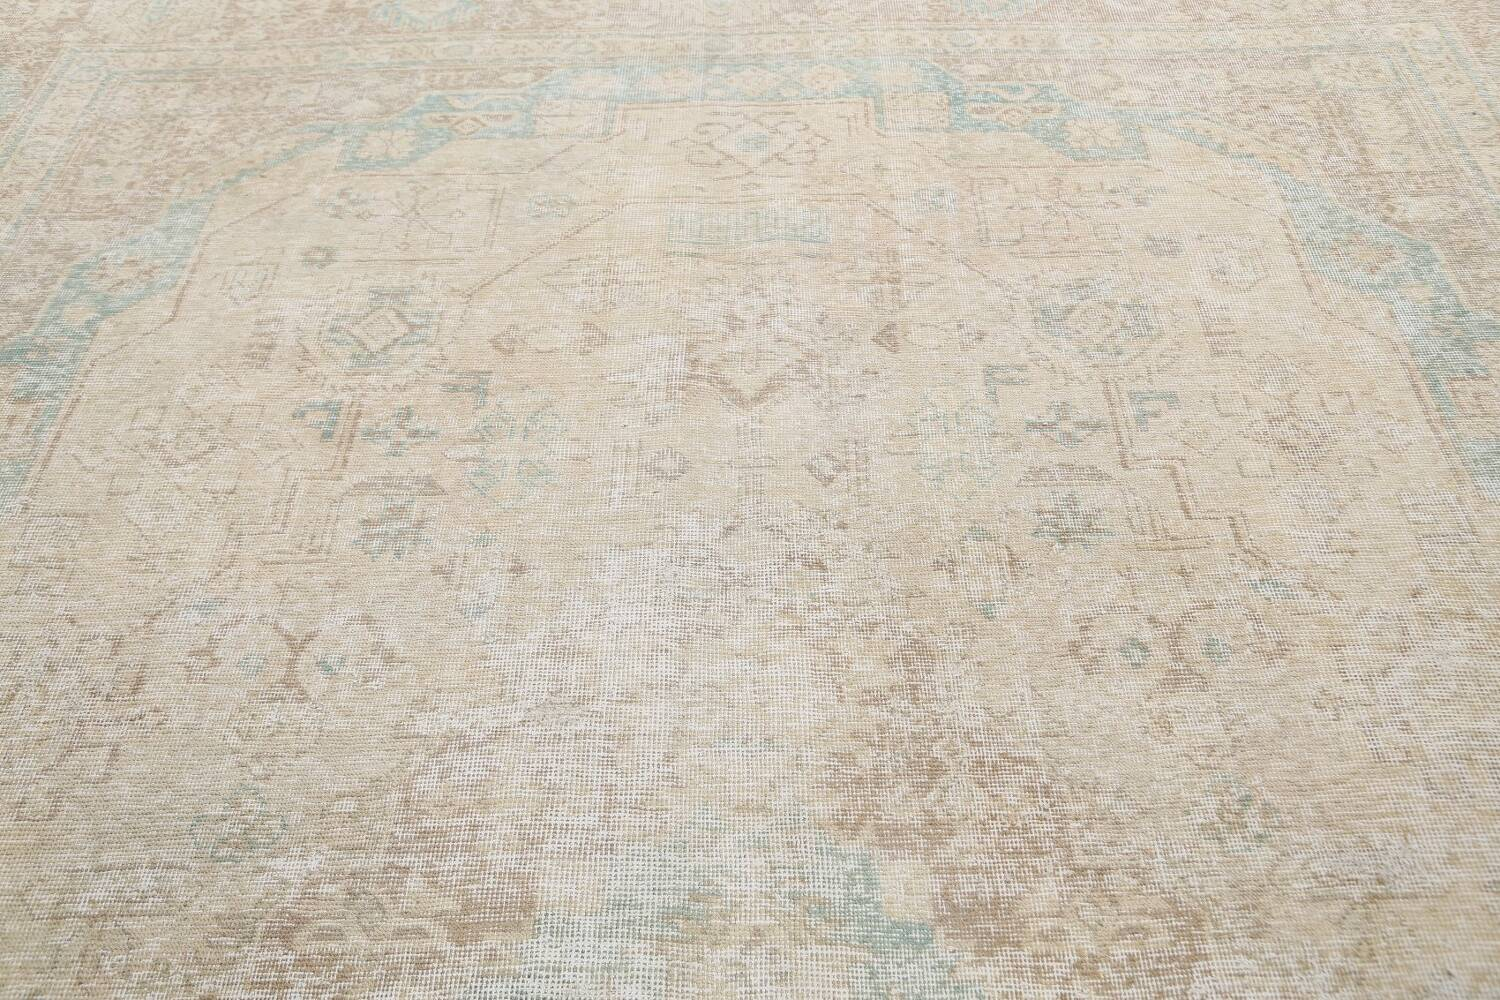 Antique Muted Distressed Tabriz Persian Area Rug 9x13 image 11